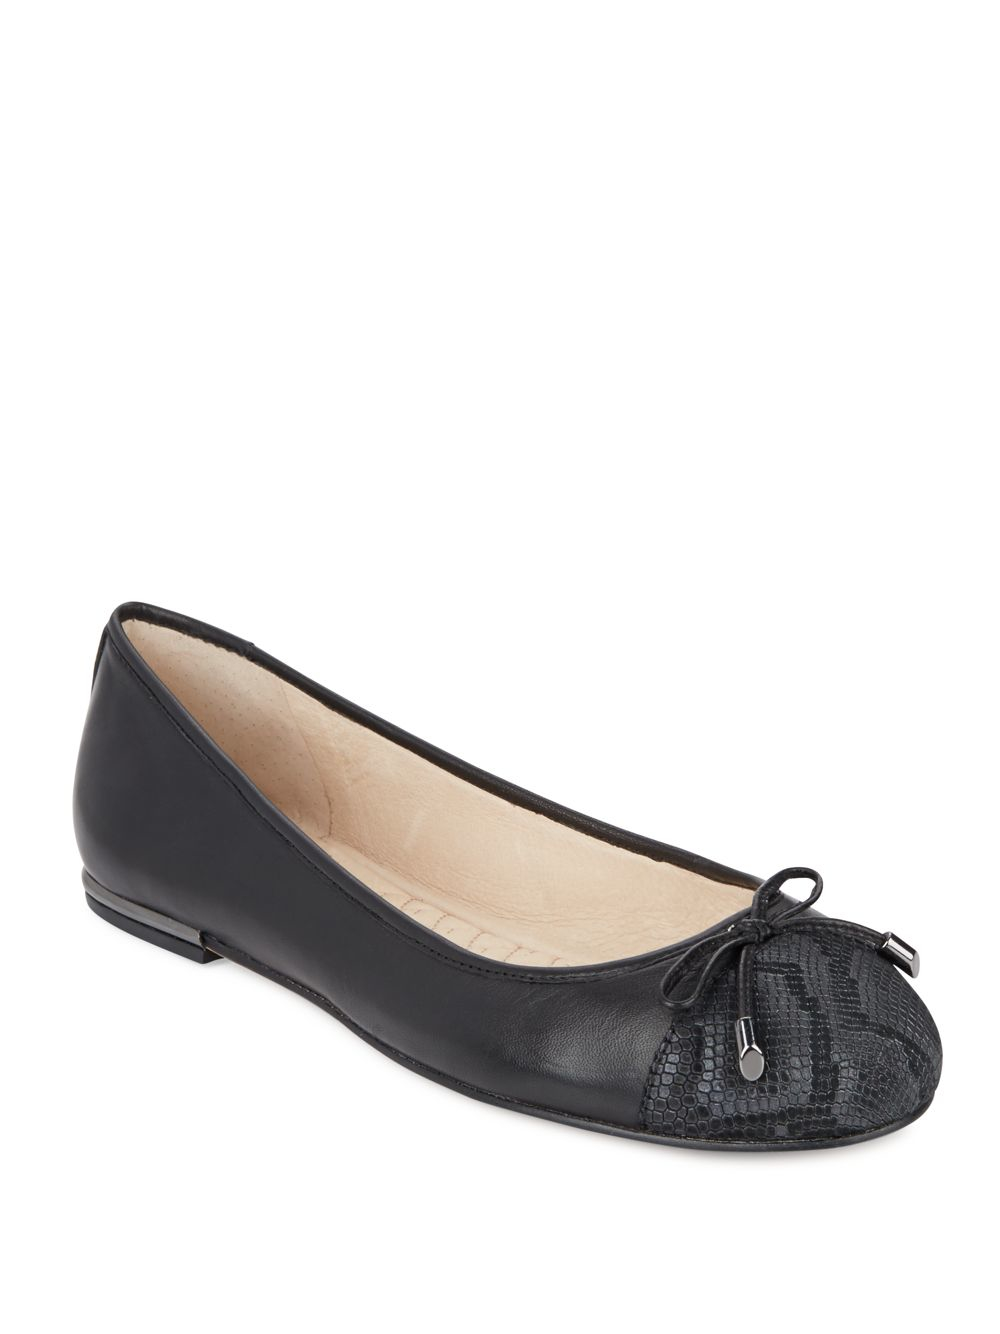 Vince Camuto Izella Cap Top Leather Ballet Flats In Black